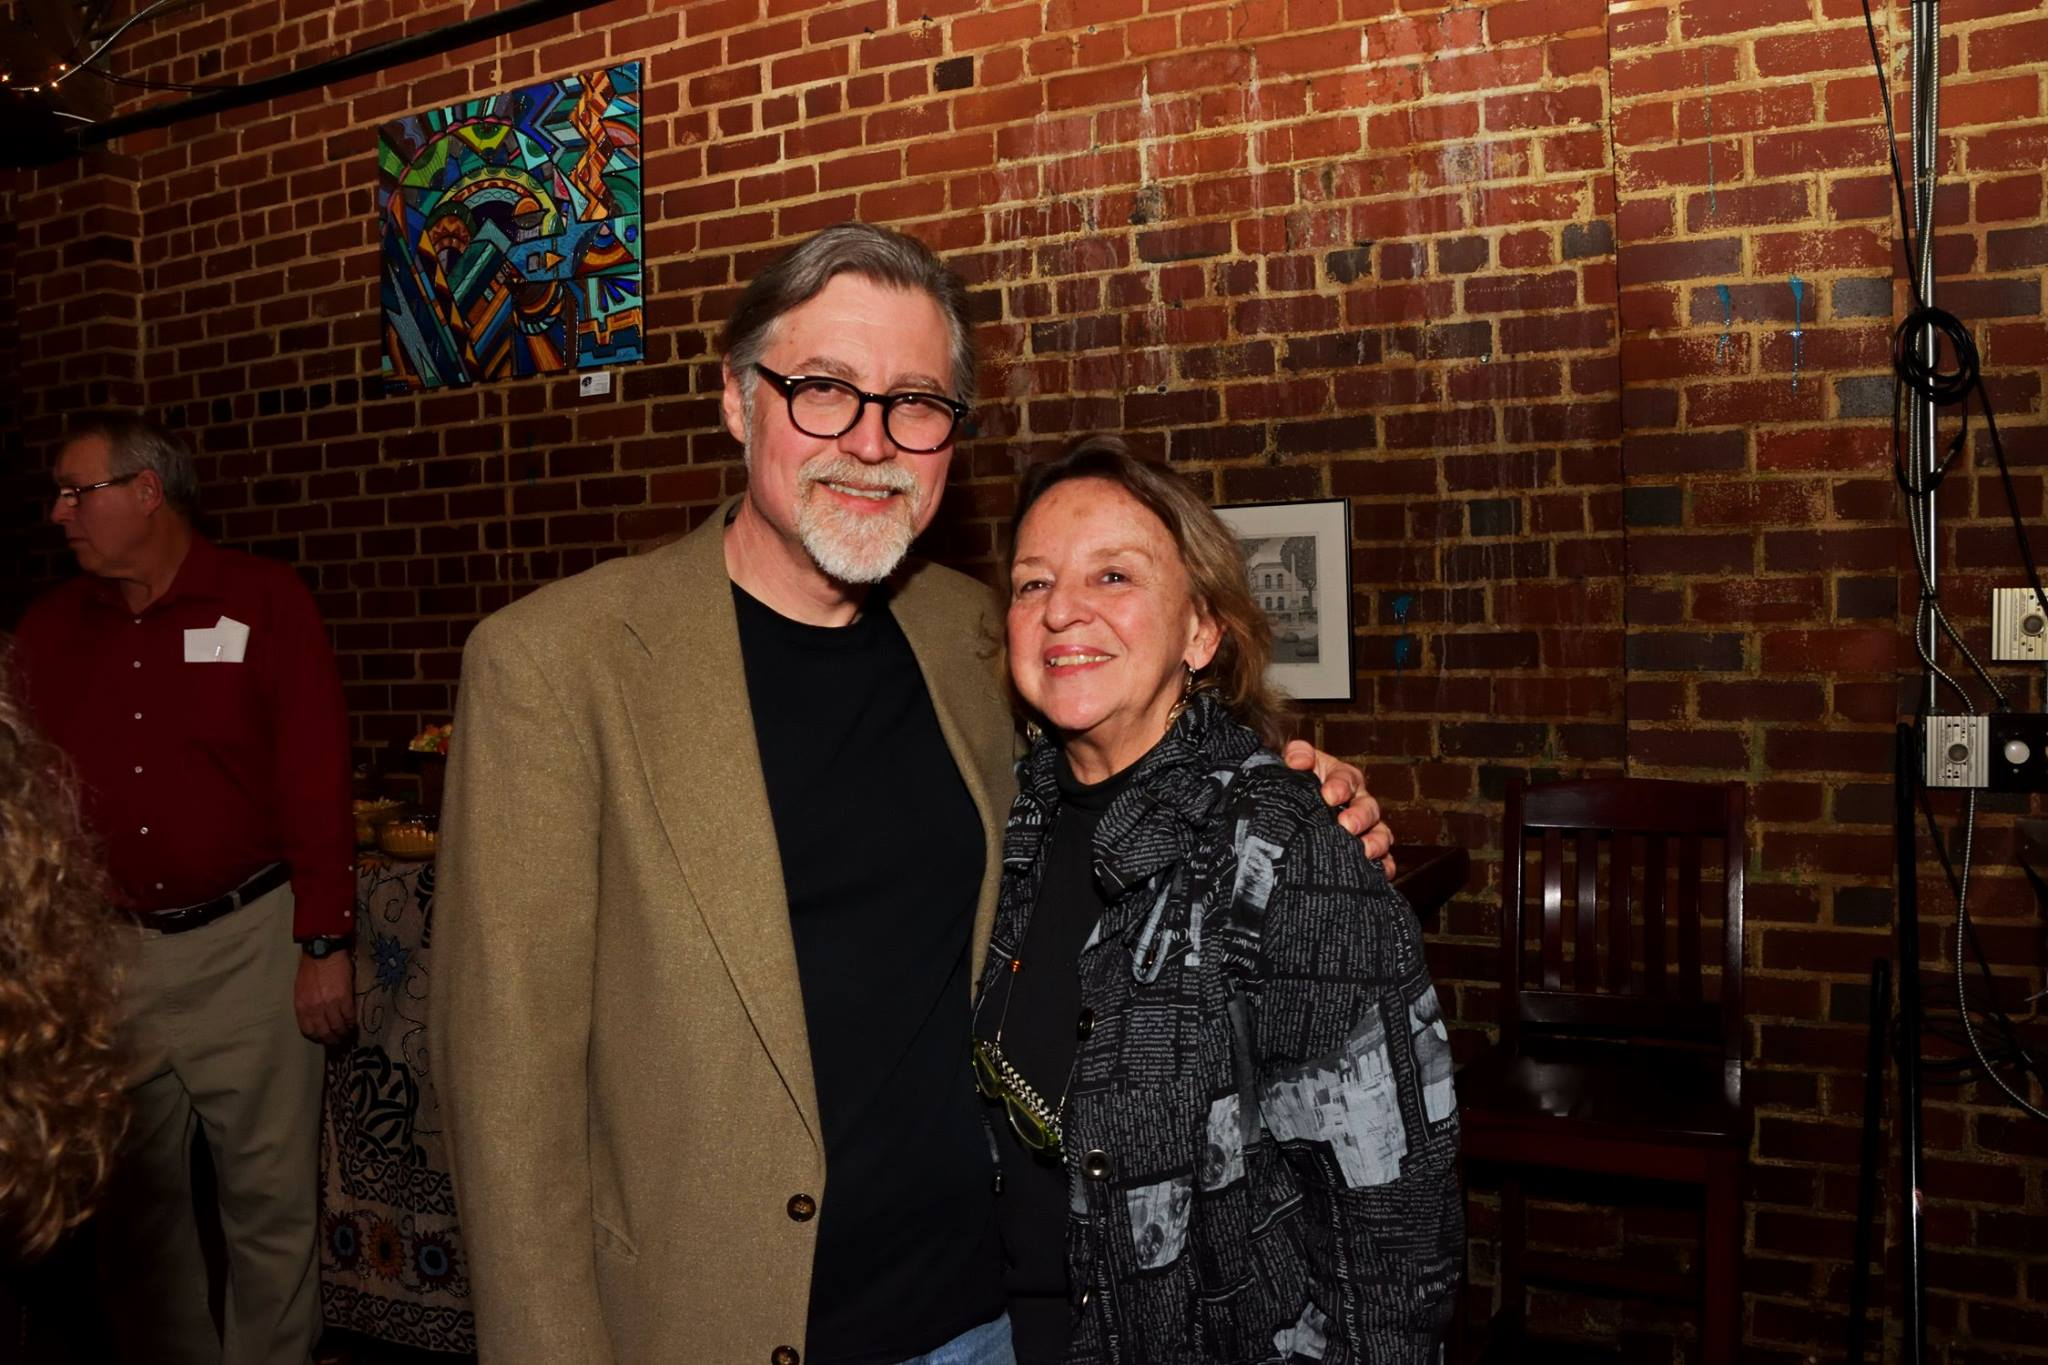 With longtime supporter and friend Sara June Goldstein of the SC Arts Commission.